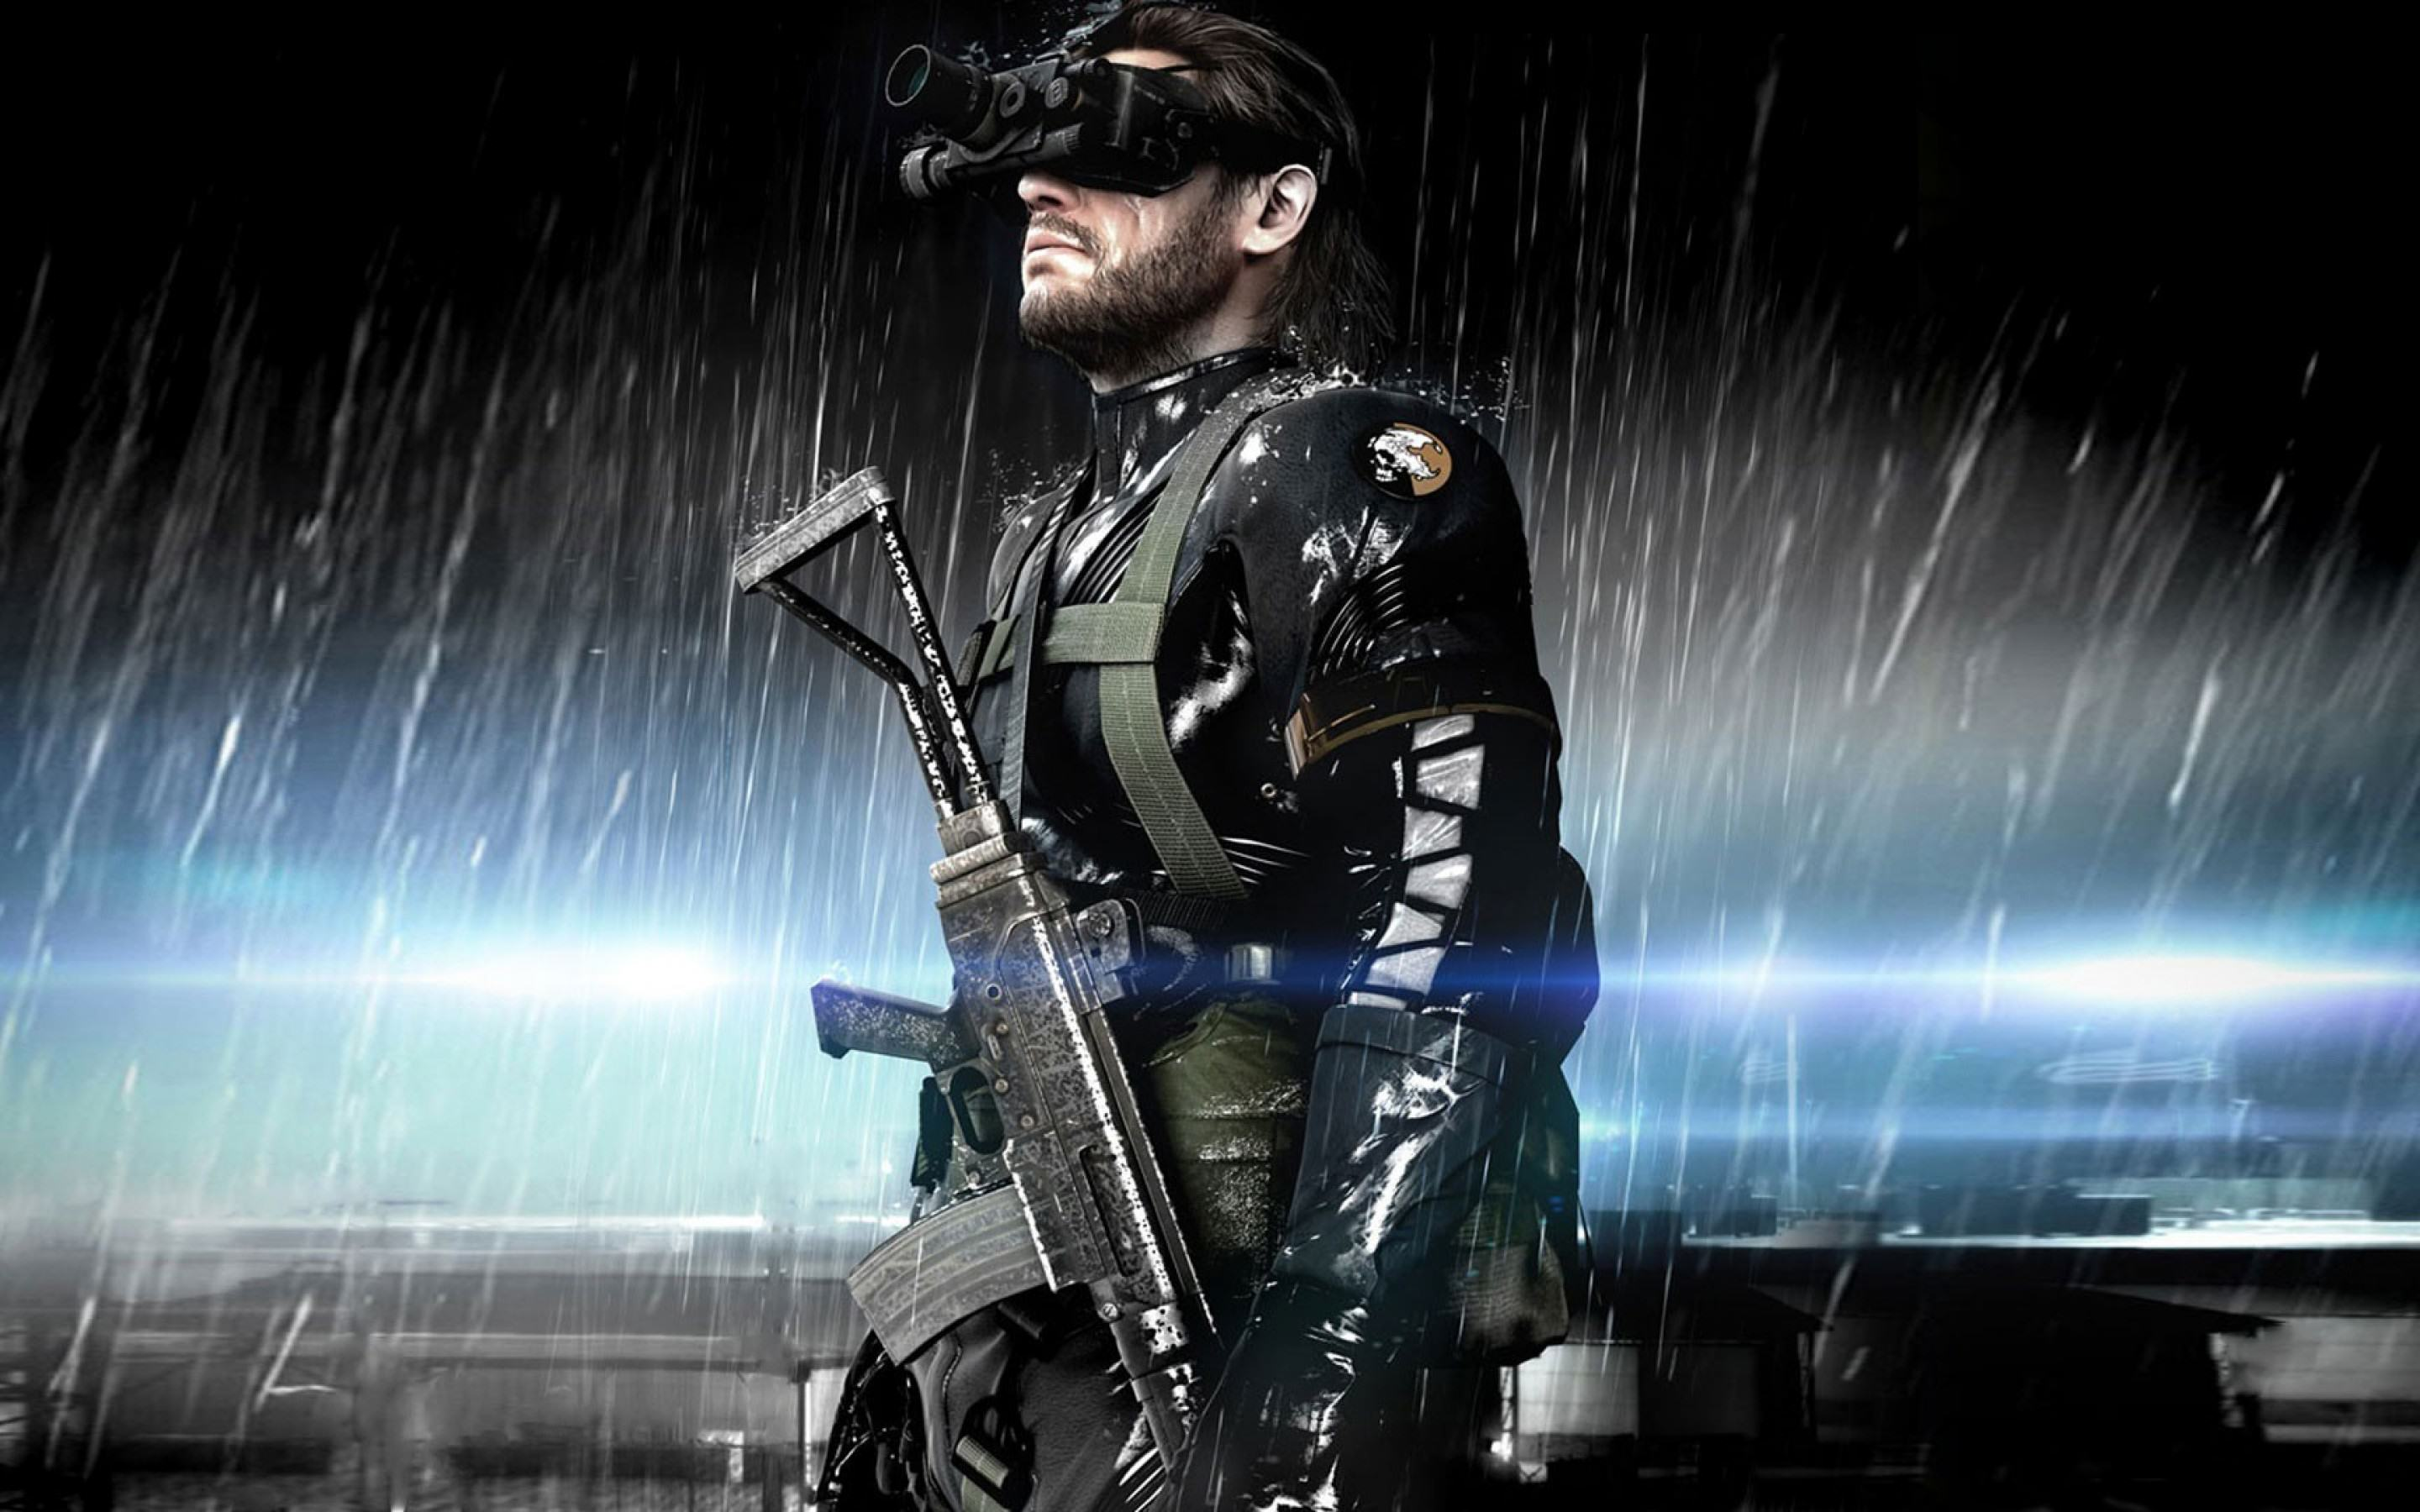 Five Reasons Why Metal Gear Solid 5 Will Be The Best In The Series 7f594626cb230b90506f235eb7b293f4ea43cab1